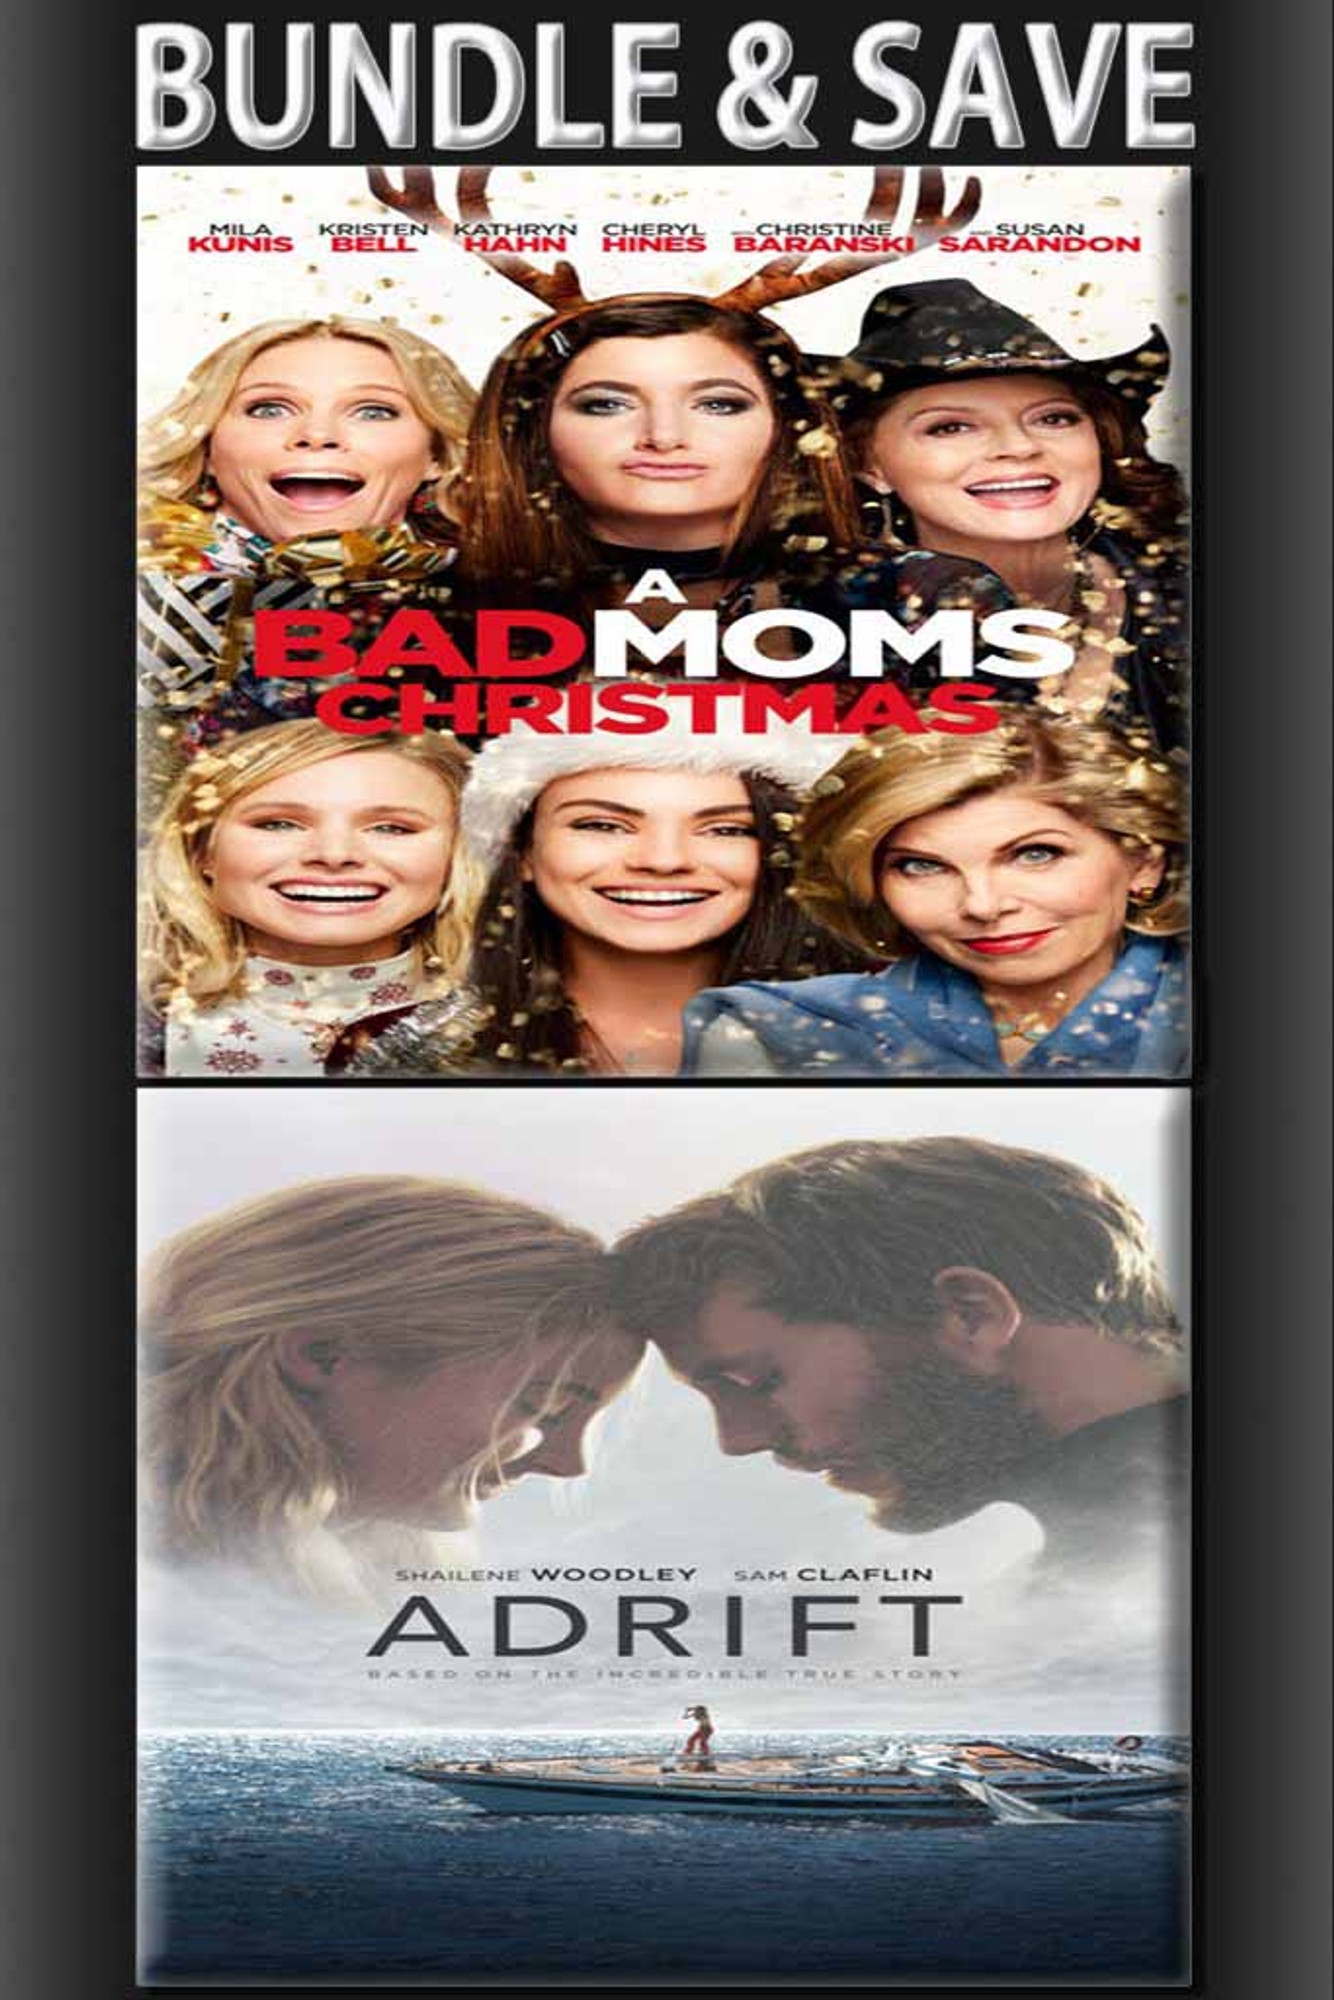 A Bad Moms Christmas Movie.A Bad Moms Christmas Adrift Bundle Itunes Hd Does Not Port Into Vudu Or Ma